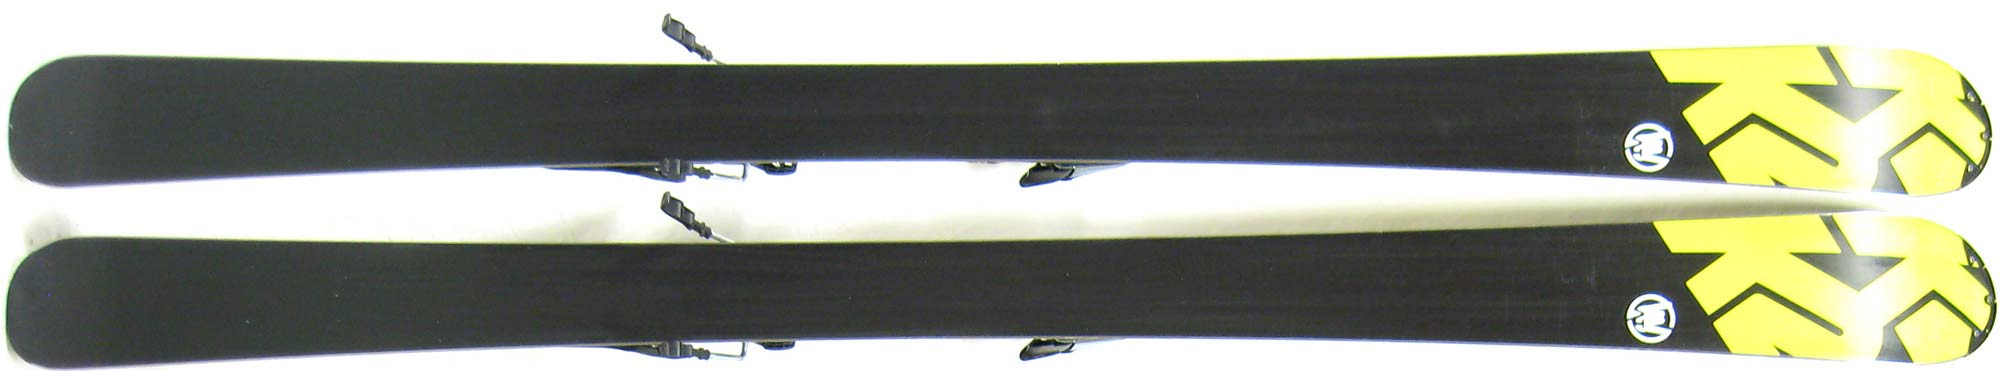 Bases of 2011 K2 Amp Shockwave Skis For Sale